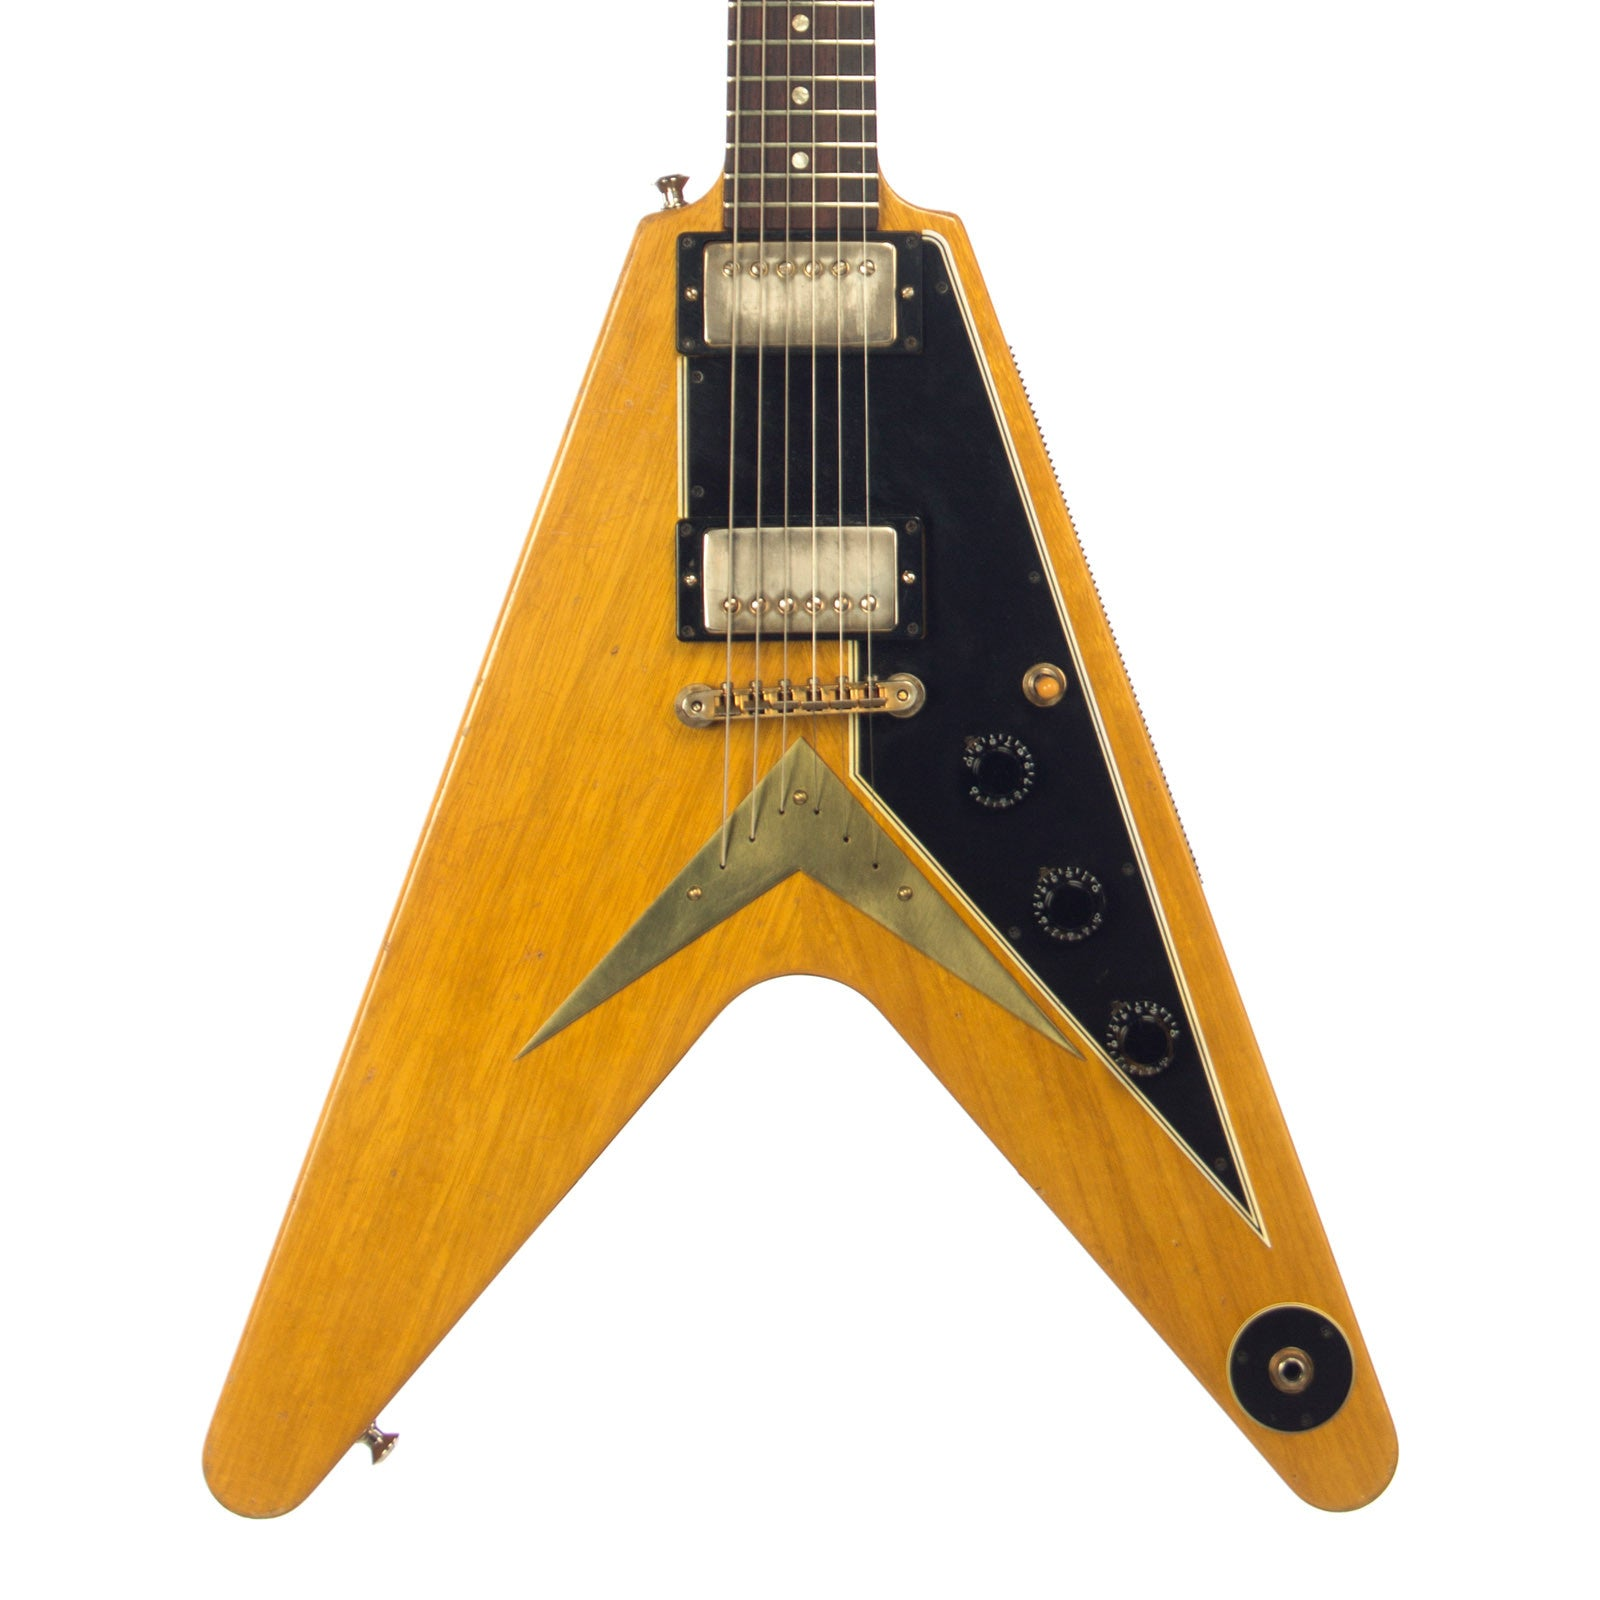 Gibson Explorer Emg Guitar Wiring Diagrams Online Schematics Diagram 85 Flying V Explained 5 Way Switch